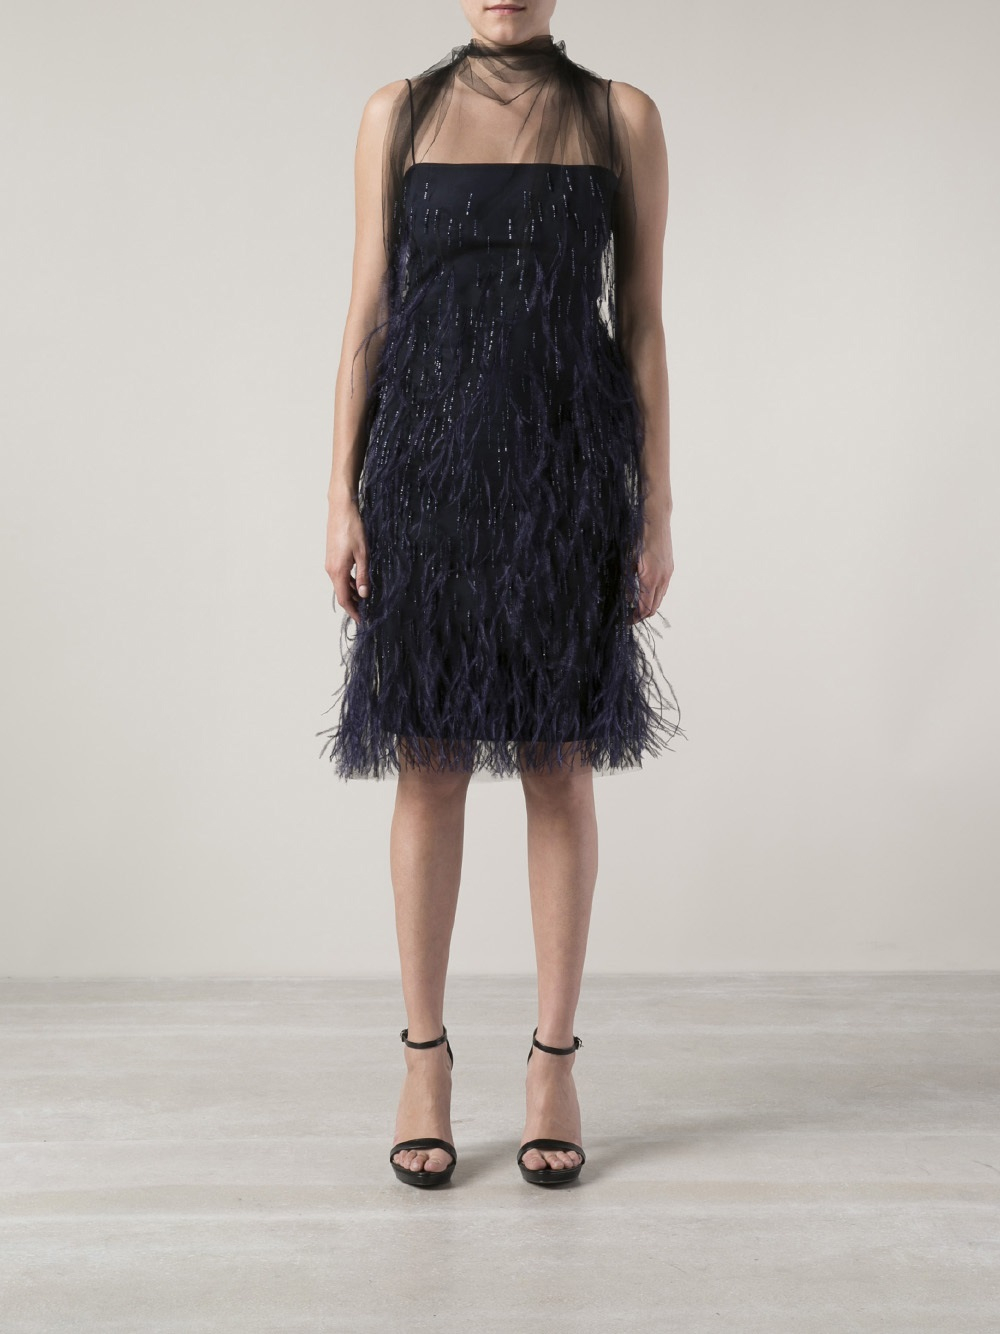 Lyst Wes Gordon Feather Dress In Blue